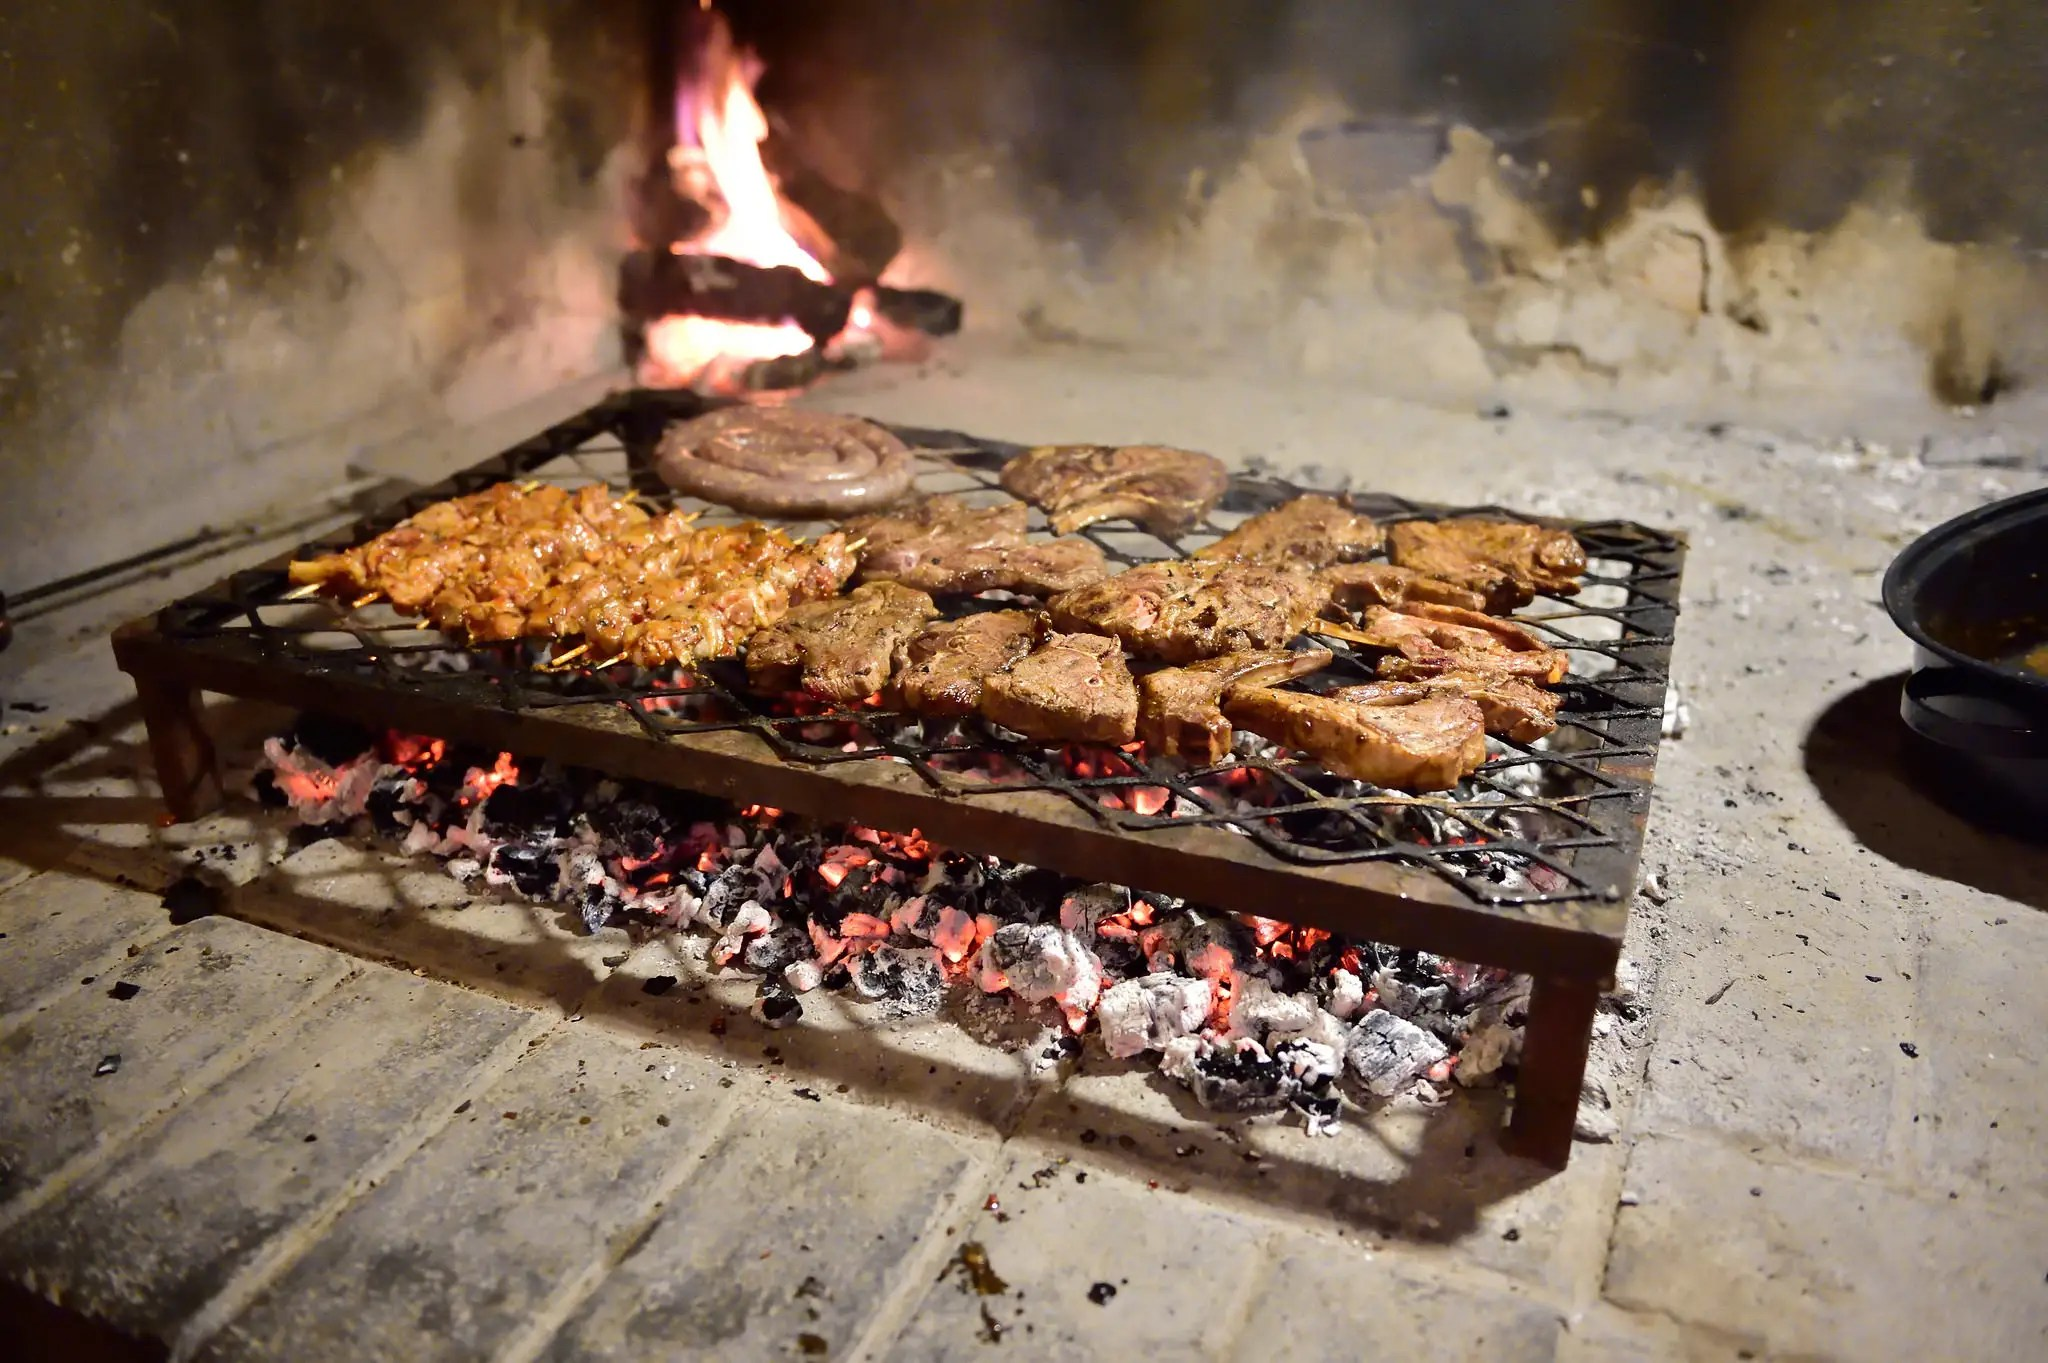 It's summer during Christmas in South Africa, so locals head to the Braai — an African grill — to cook up lamb, turkey, and pork.